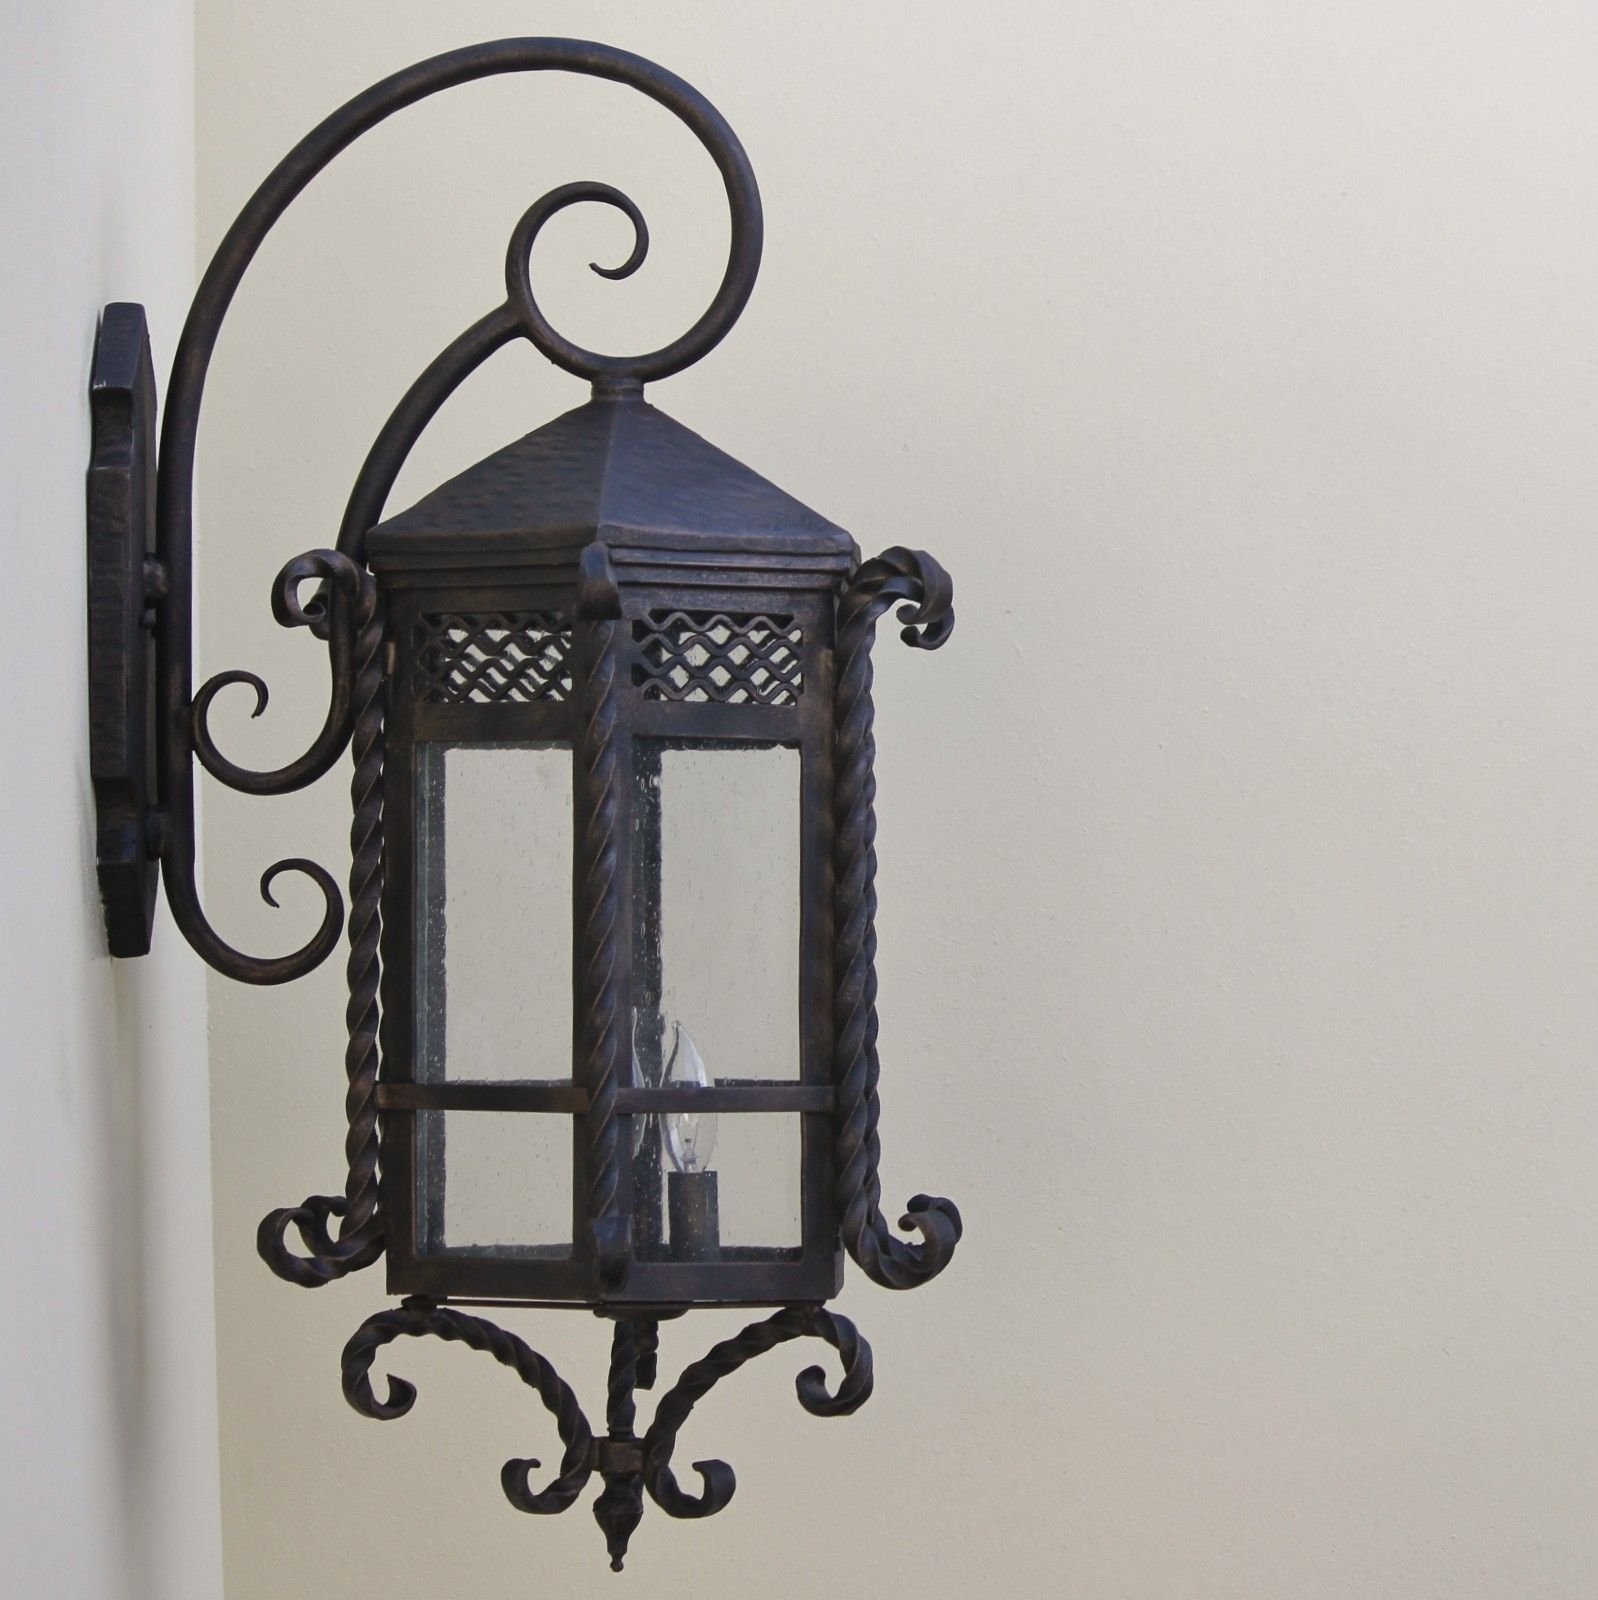 Wrought iron outdoor wall lights afshowcaseprop